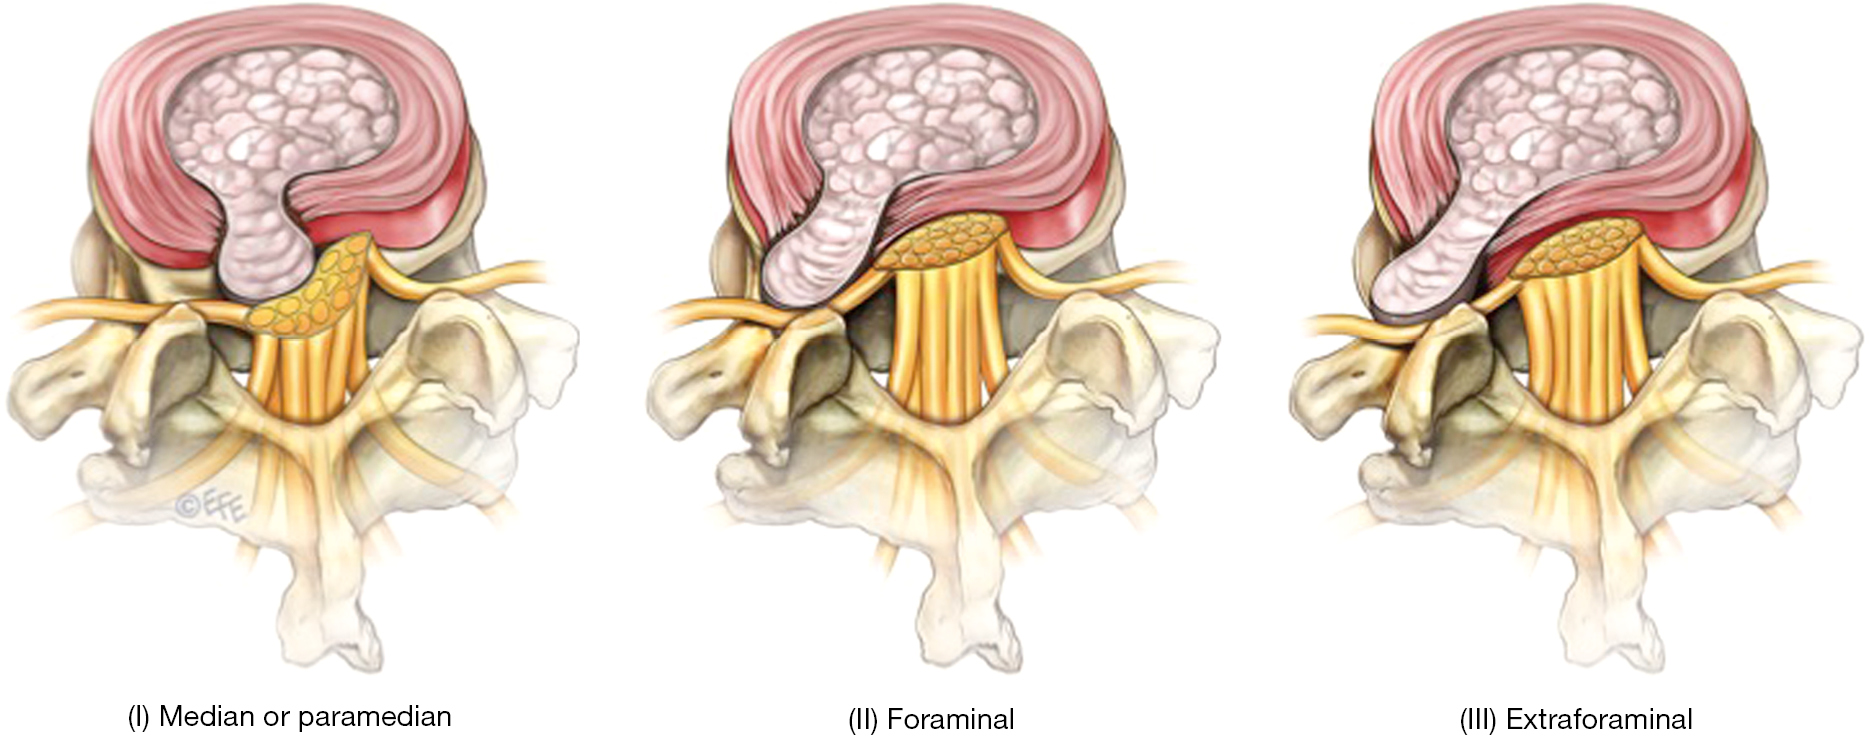 surgical treatment of far lateral lumbar disc herniation: a safe, Cephalic Vein